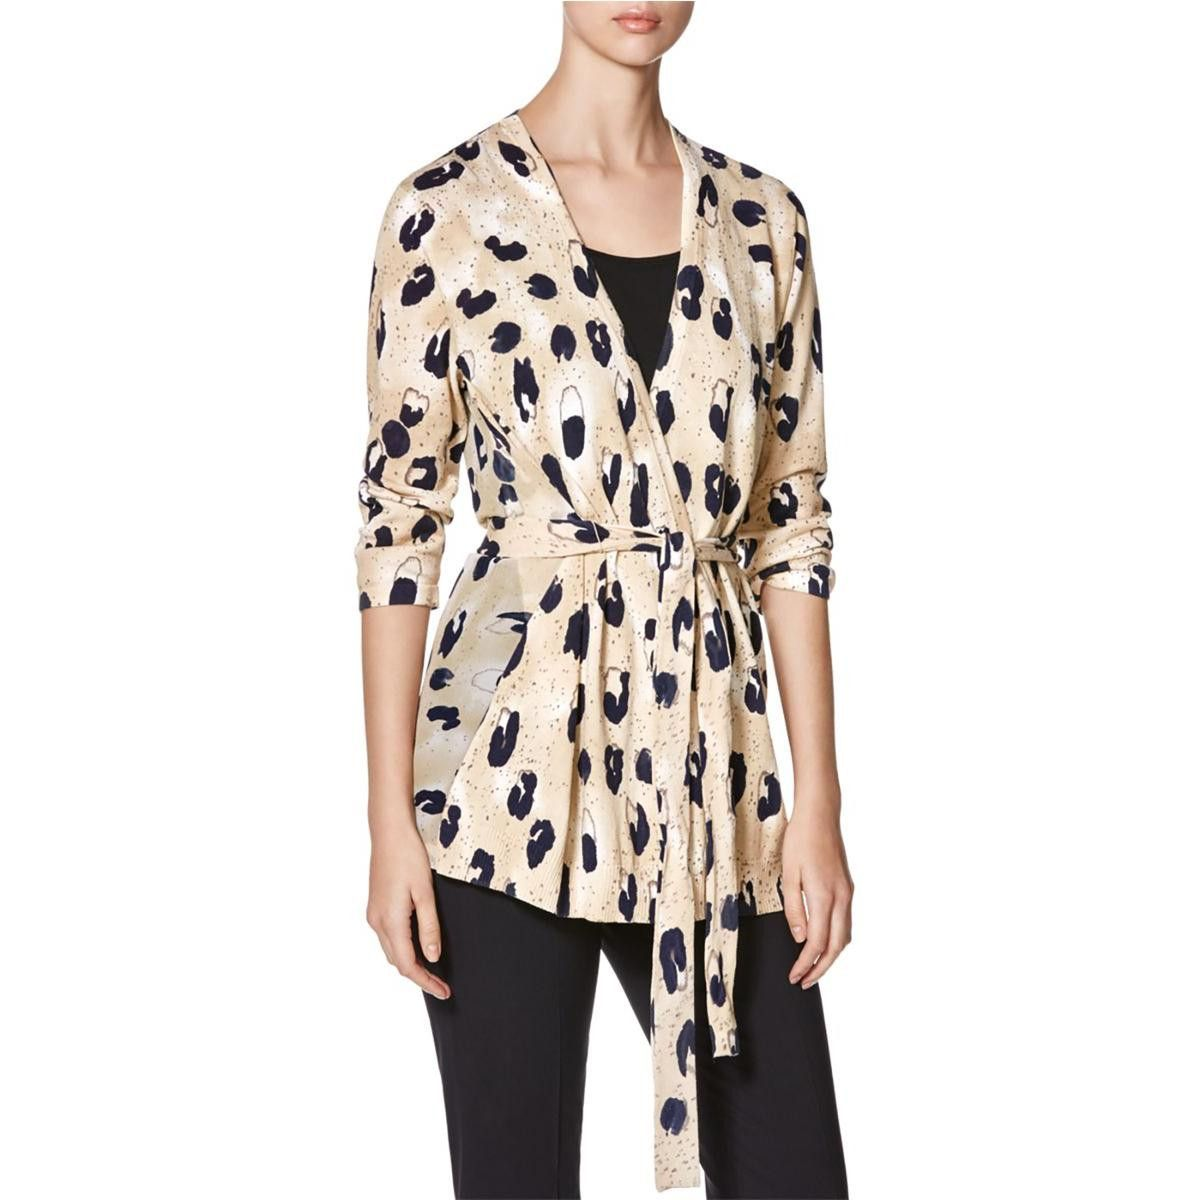 Womens Silk Animal Print Cardigan Top | Tops, Products and Cardigans